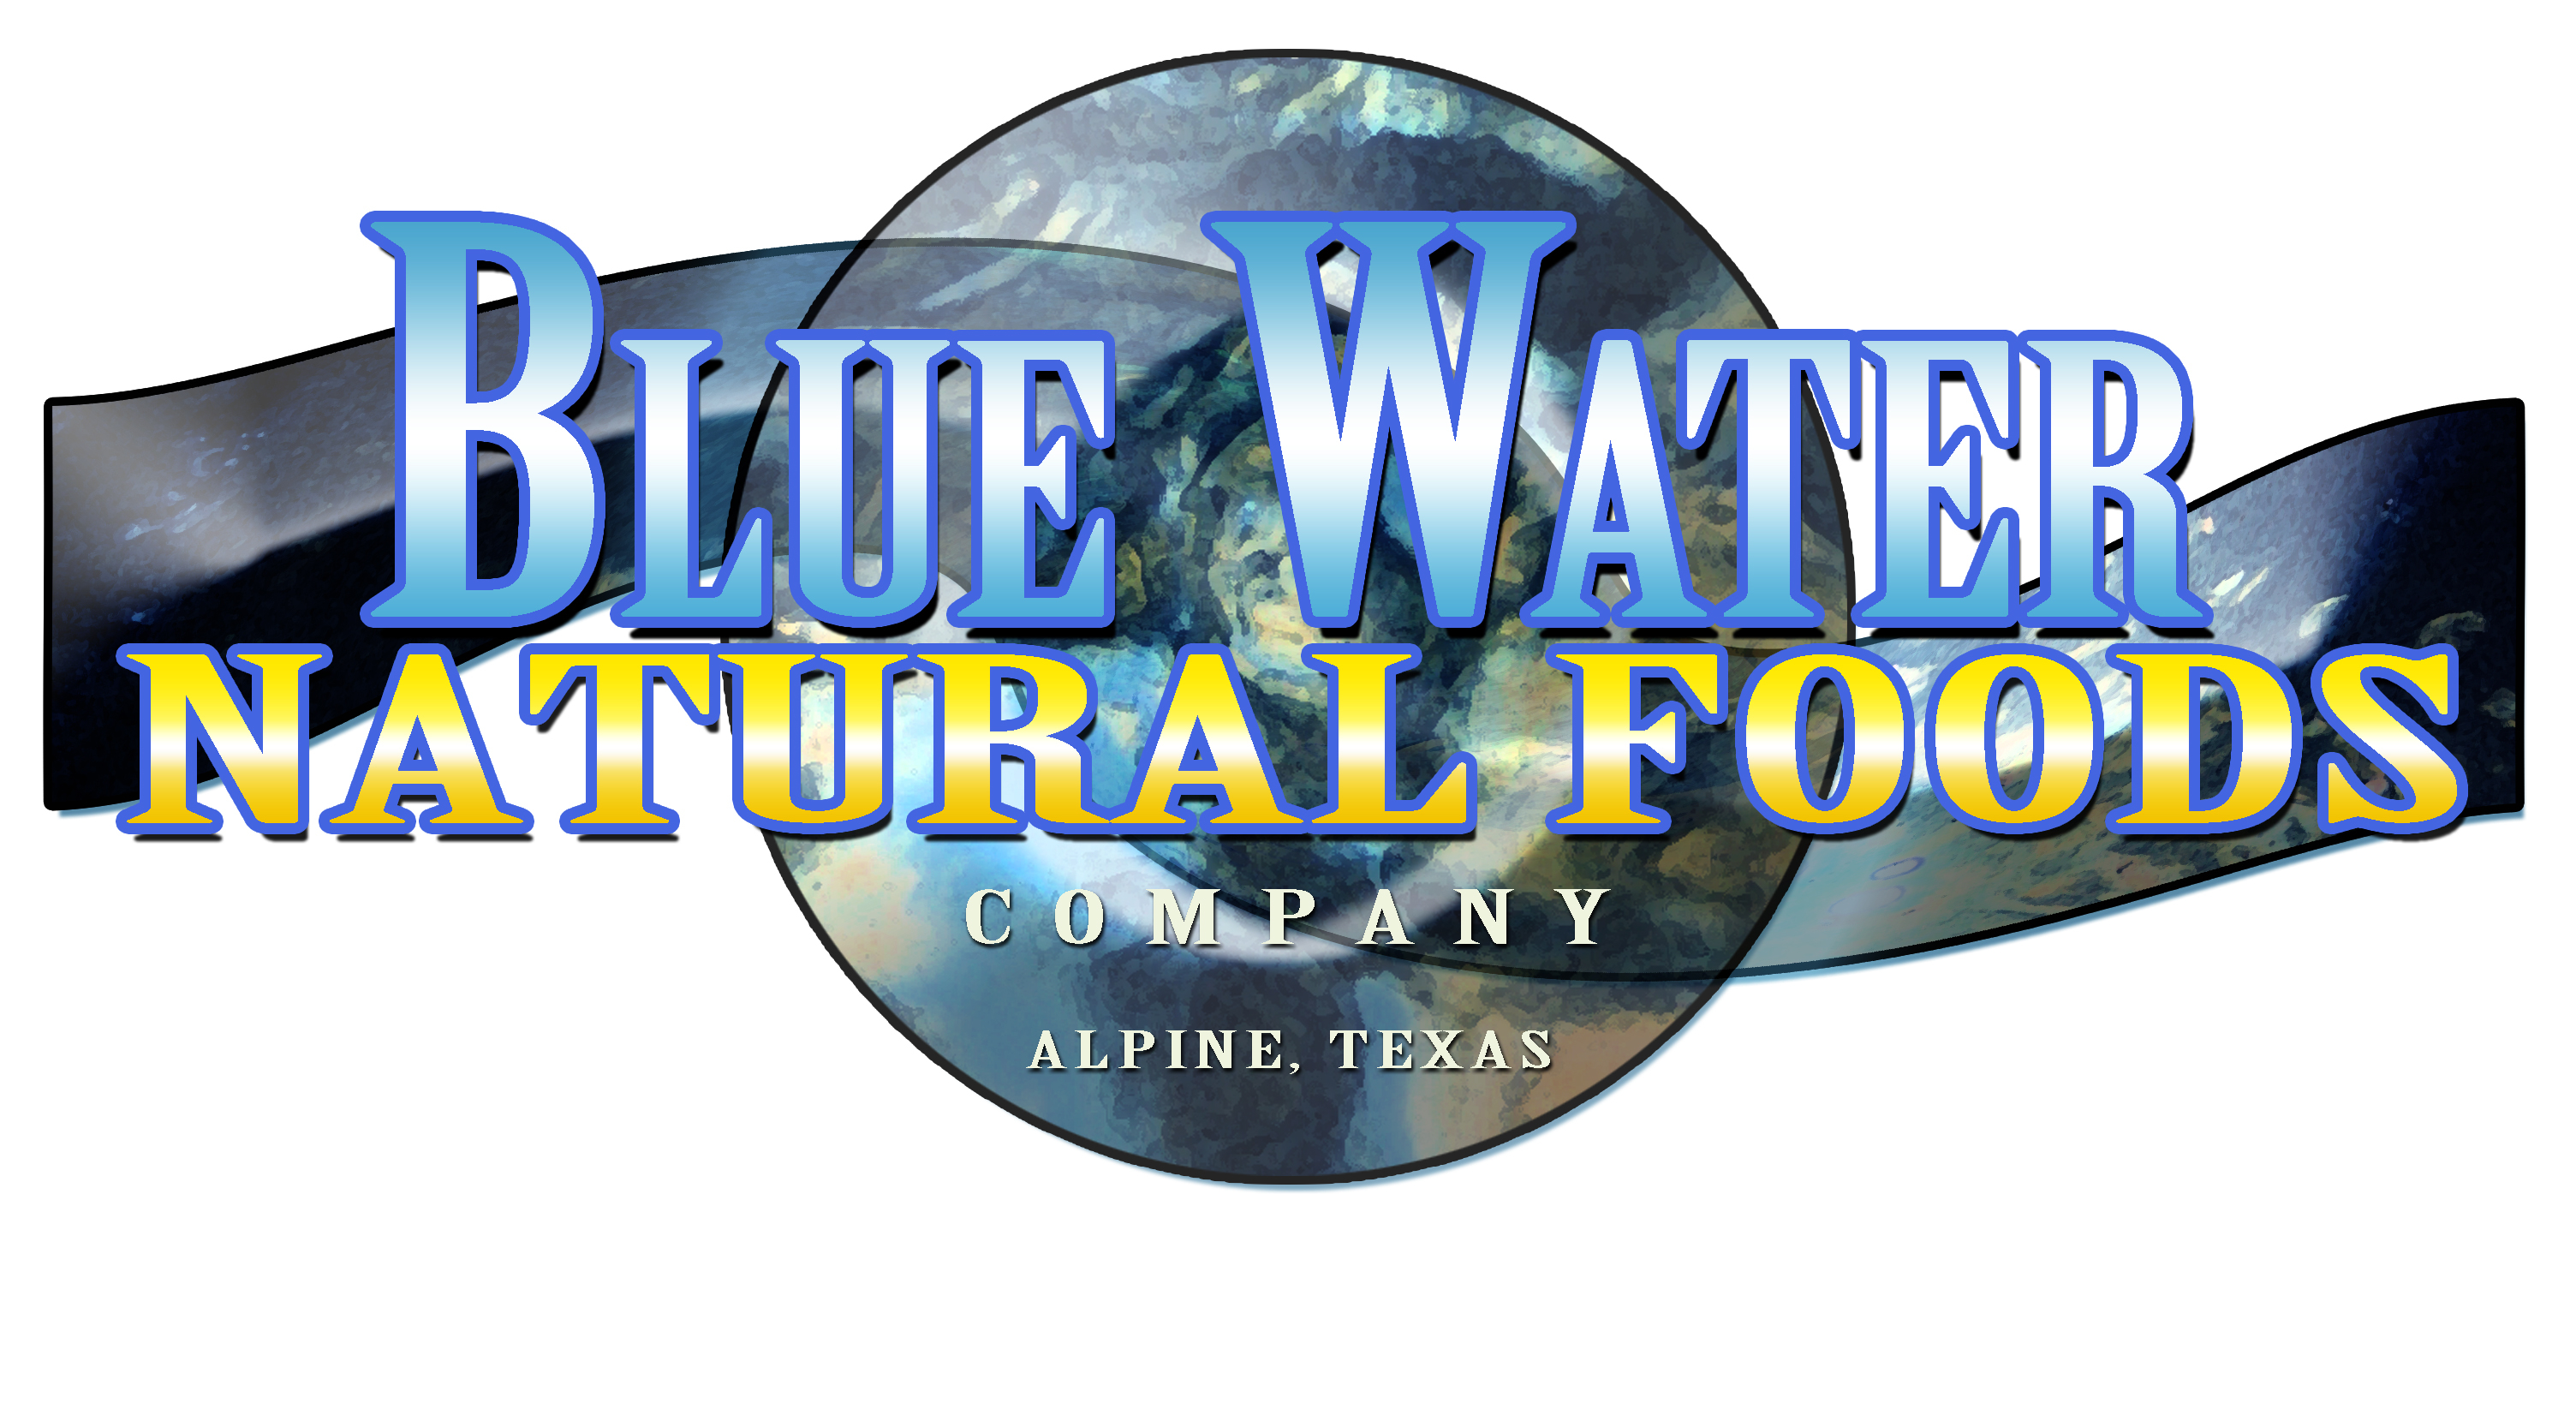 Blue Water Natural Foods Company - ad image